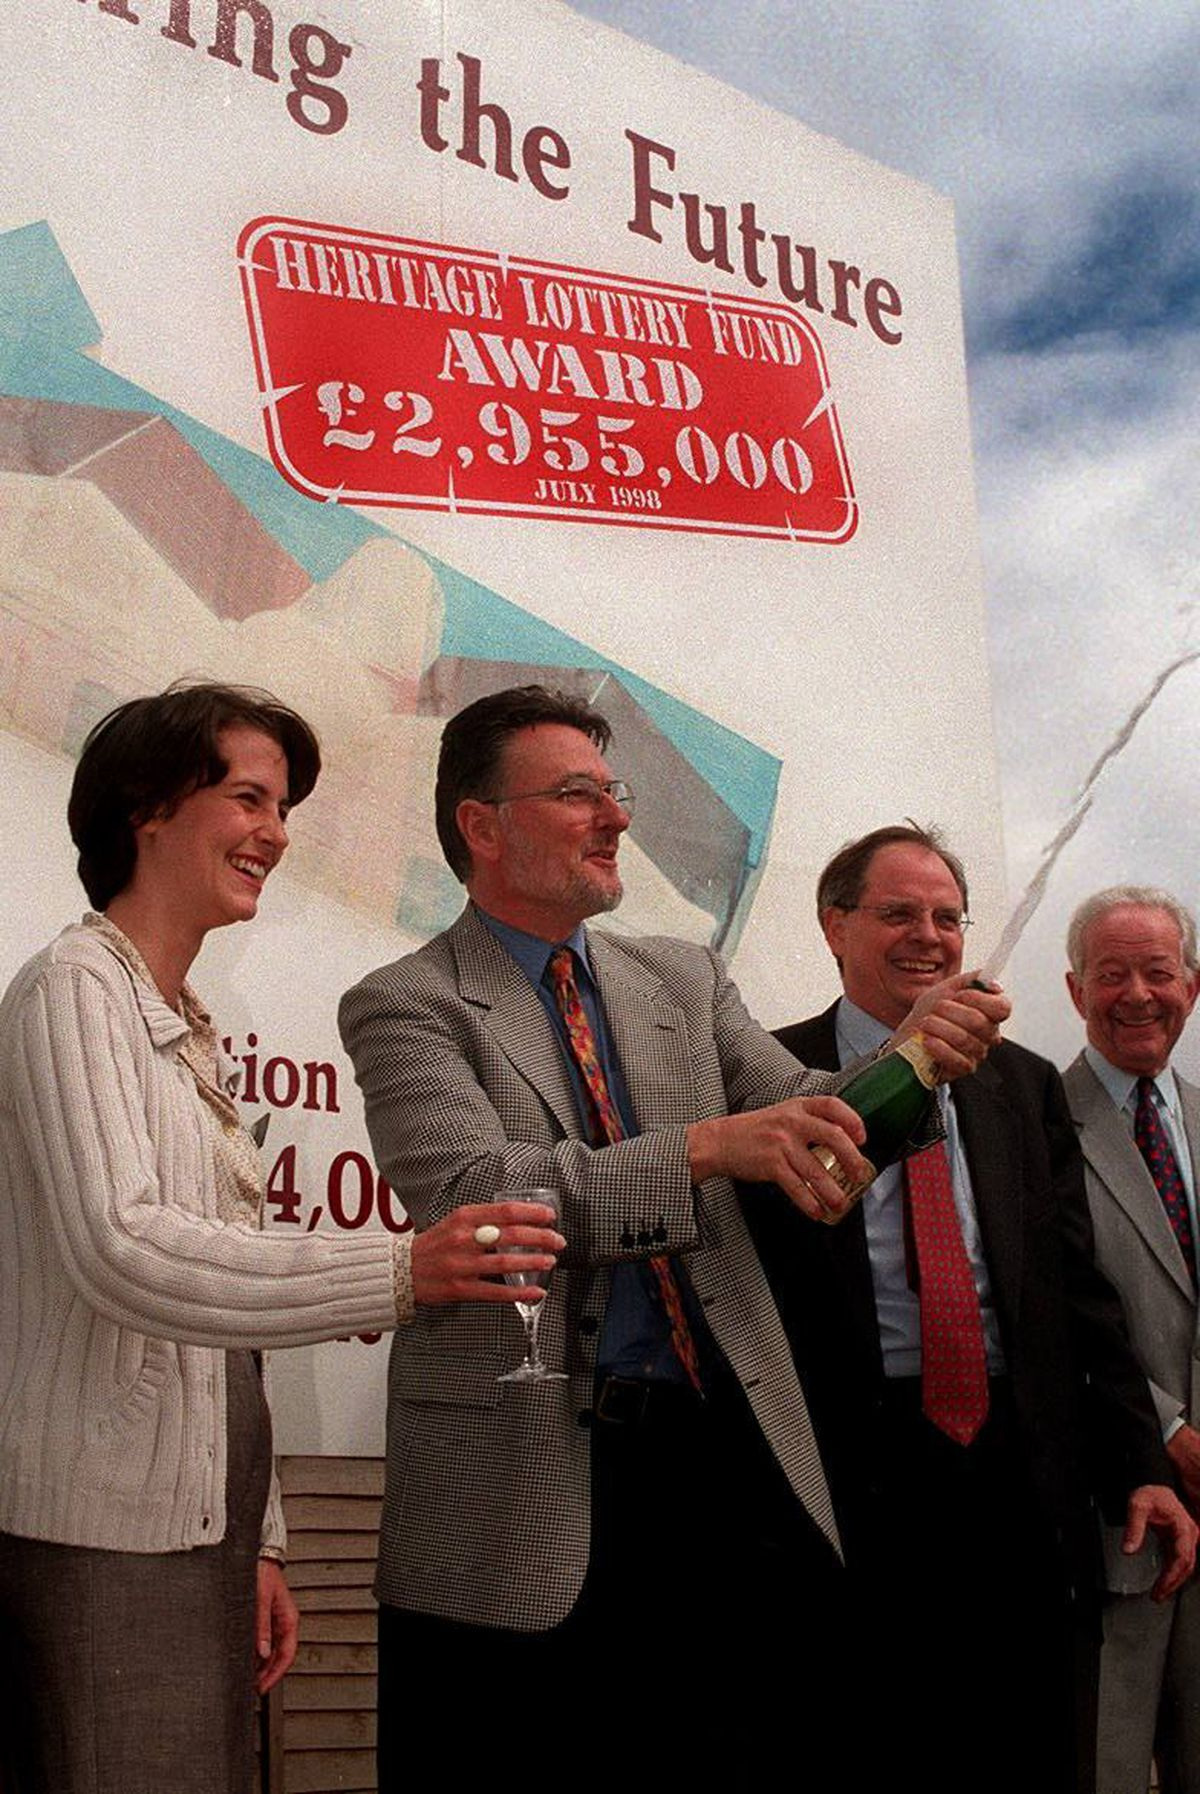 Ian Walden, then director of the Black Country Living Museum, pictured cracking open the champagne in 1998 after the attraction was awarded more than £2.9 million for the Rolfe Street baths project. He was pictured with Katie Norgrove of the National Lottery, then Dudley North MP Sir Ross Cranston, and Jack Russell